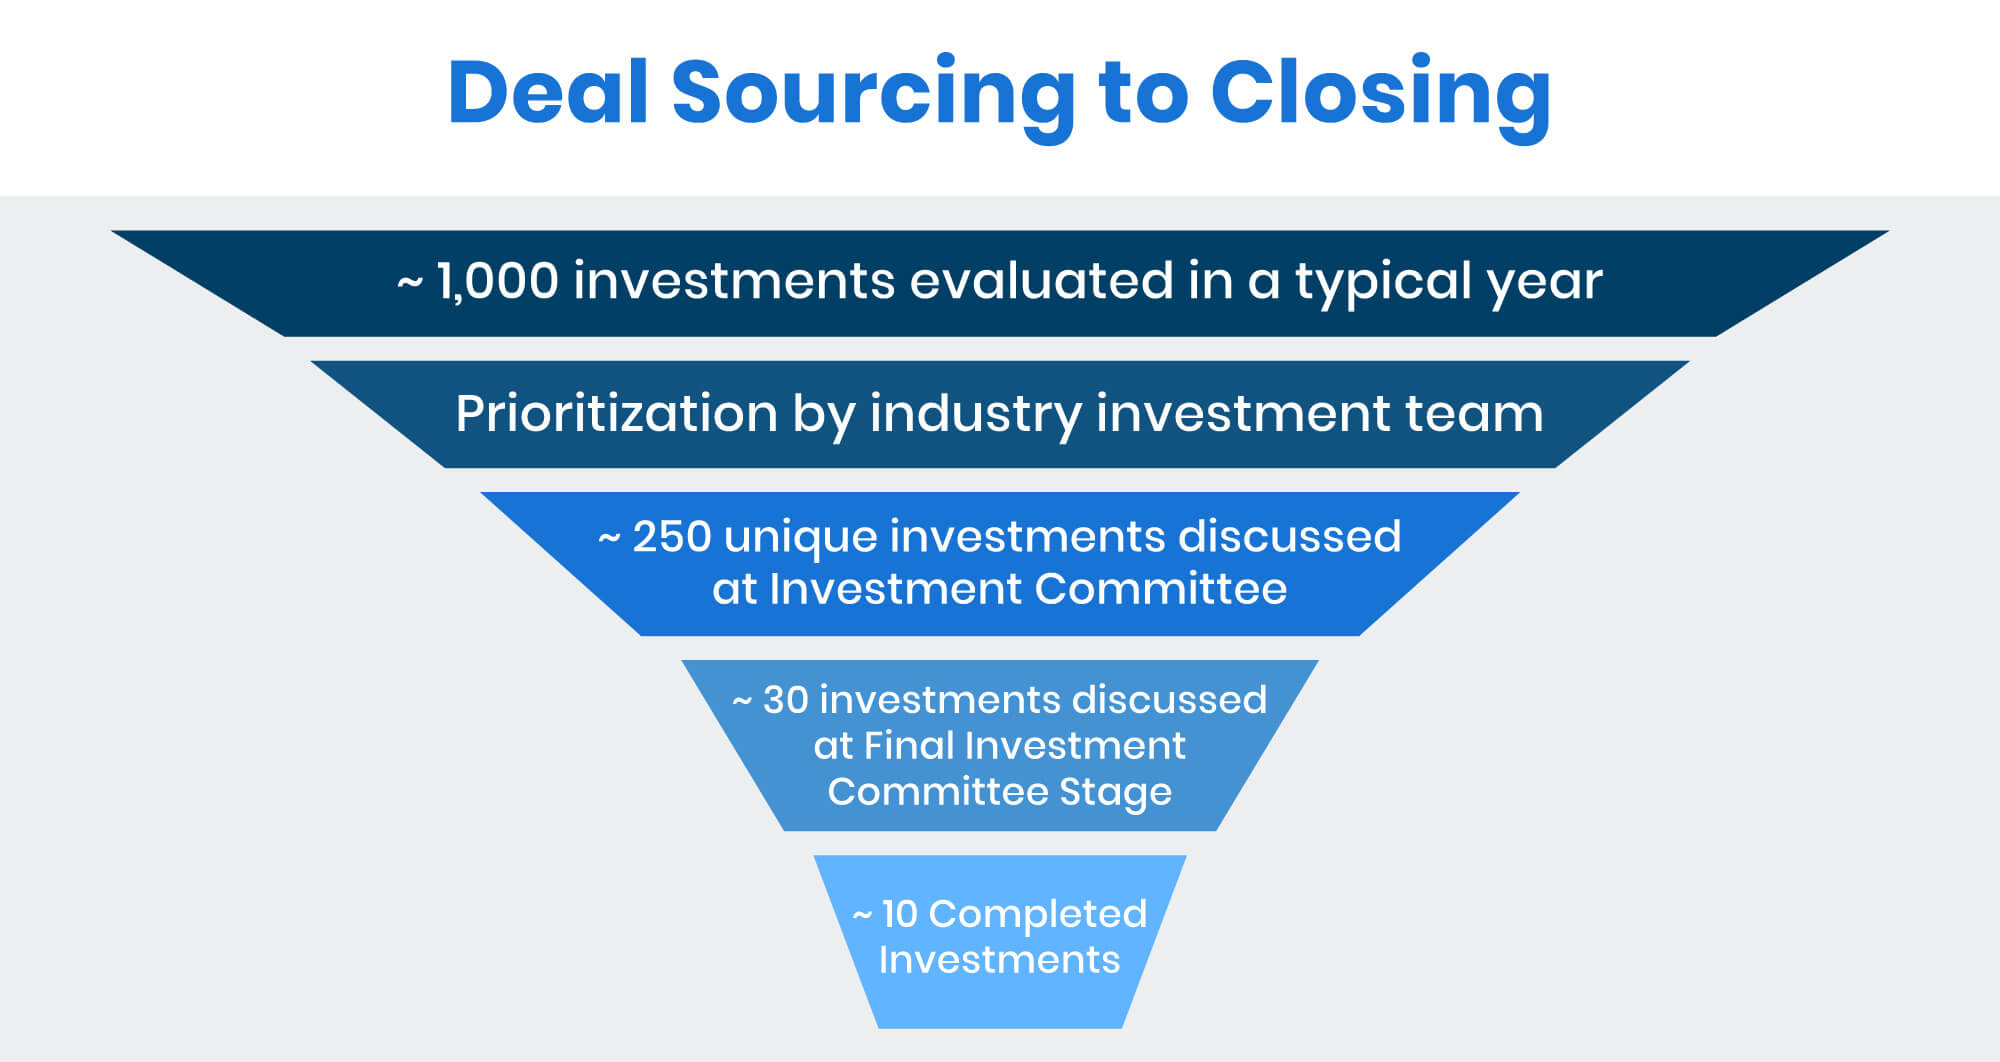 deal sourcing to closing